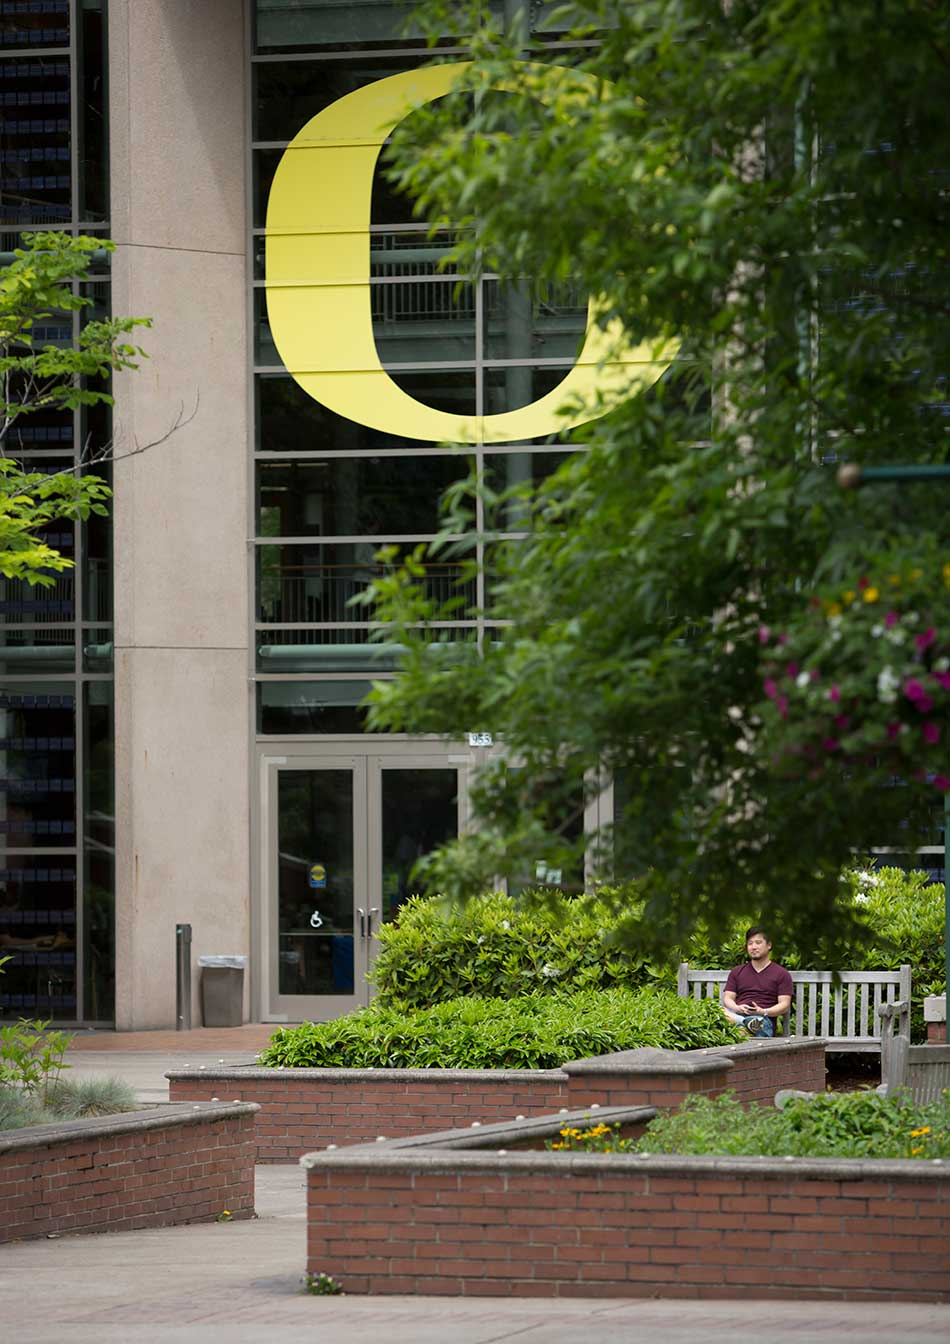 The O in front of the LIllis Business Complex